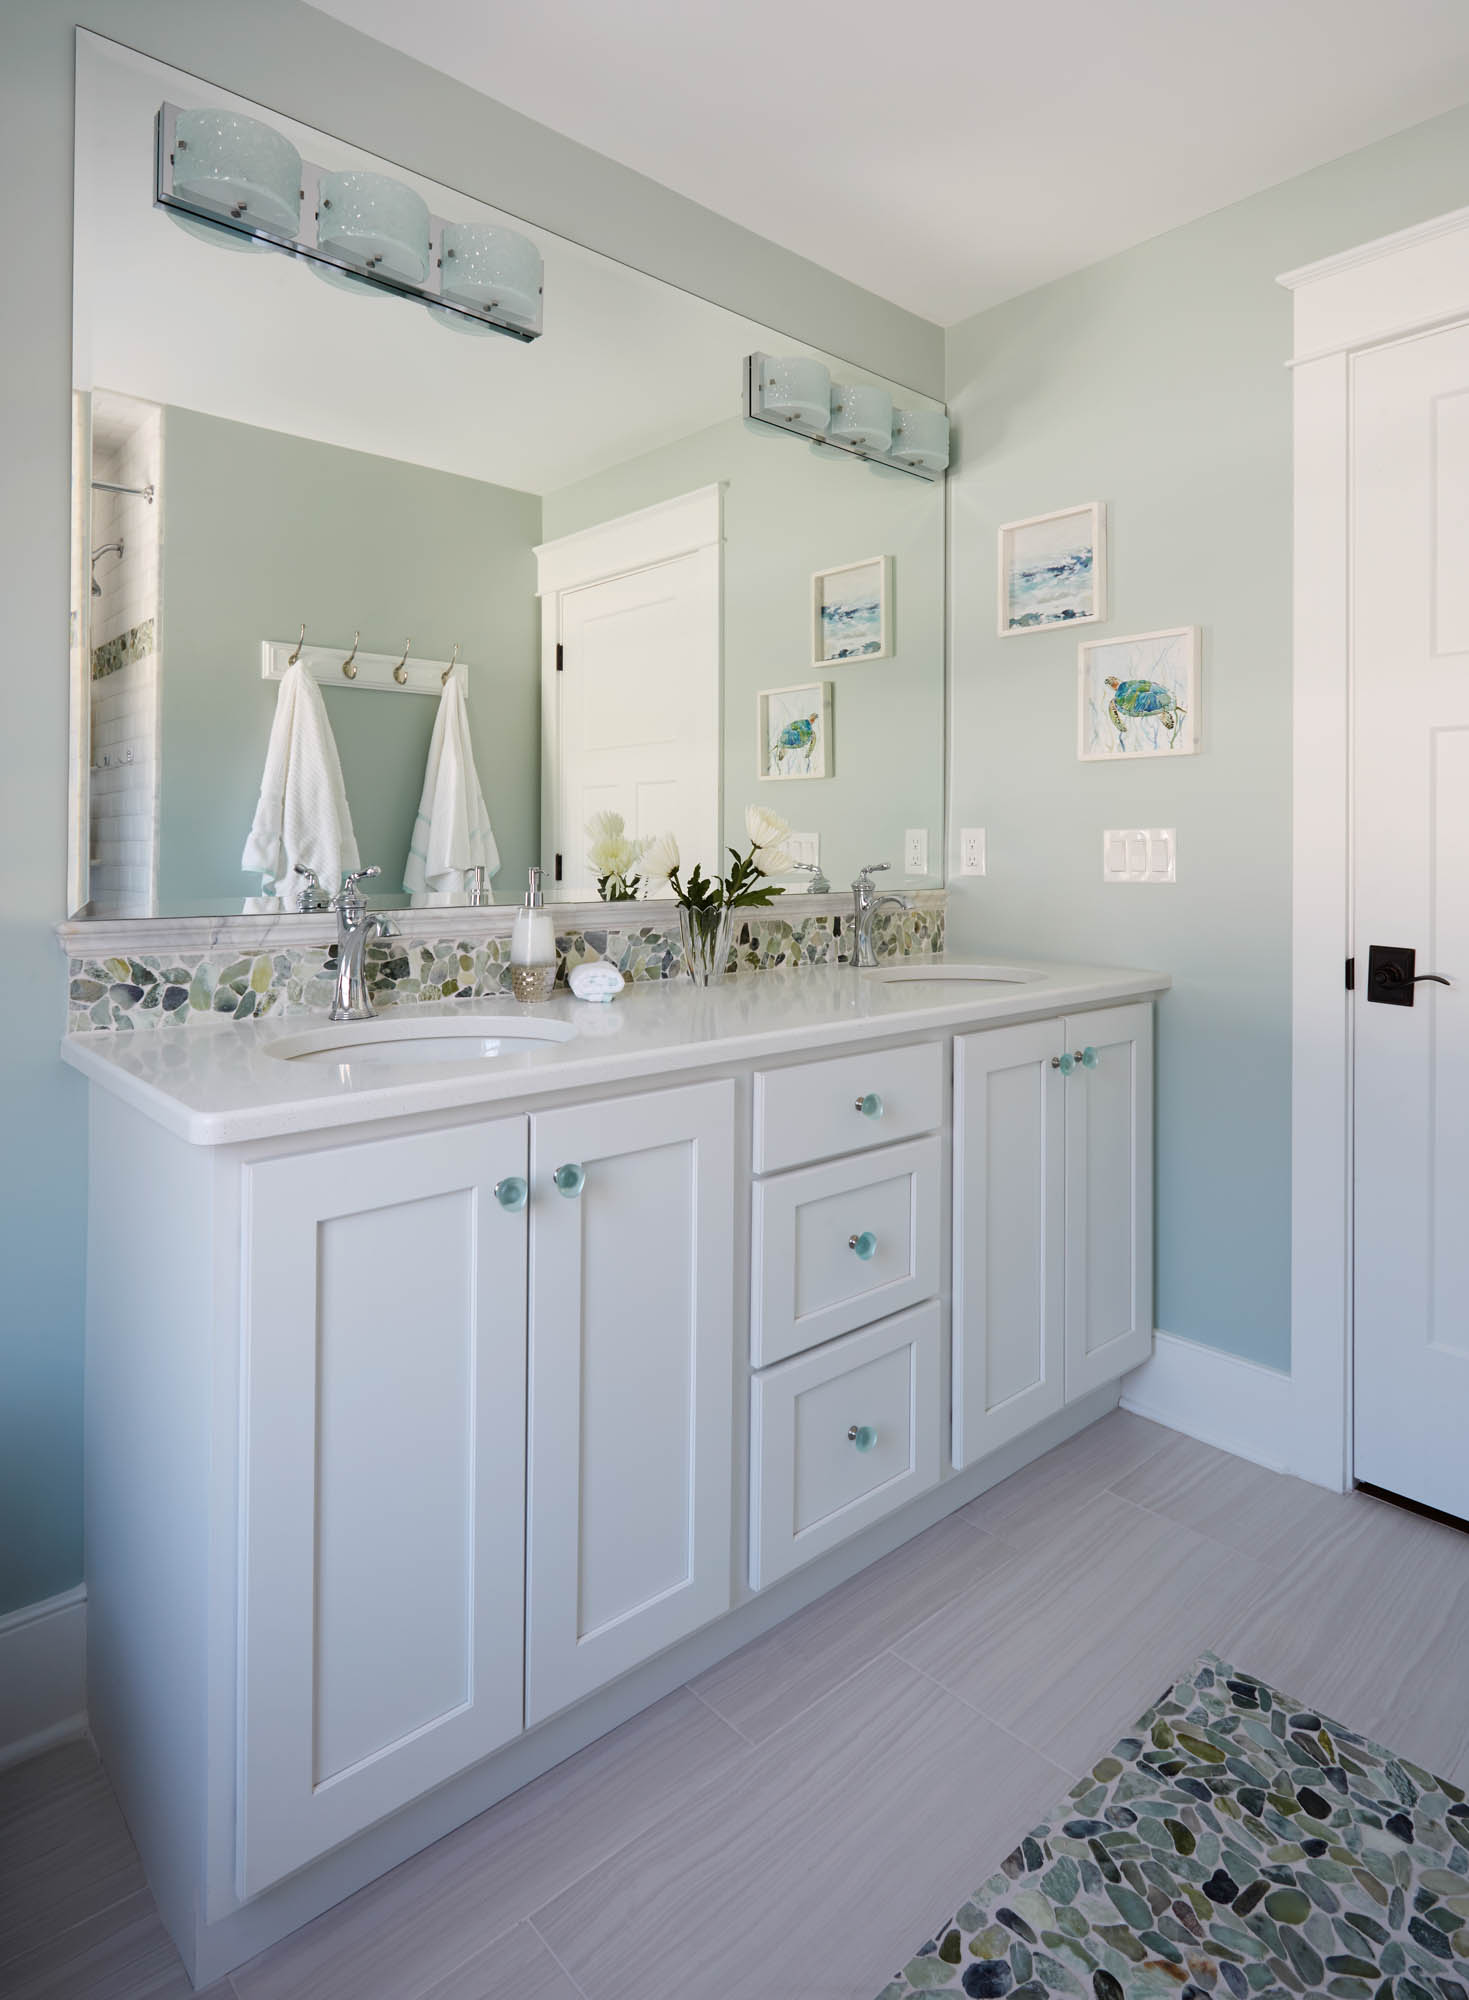 Painted guest bathroom vanity in Extra White by Showplace Cabinetry - view 1